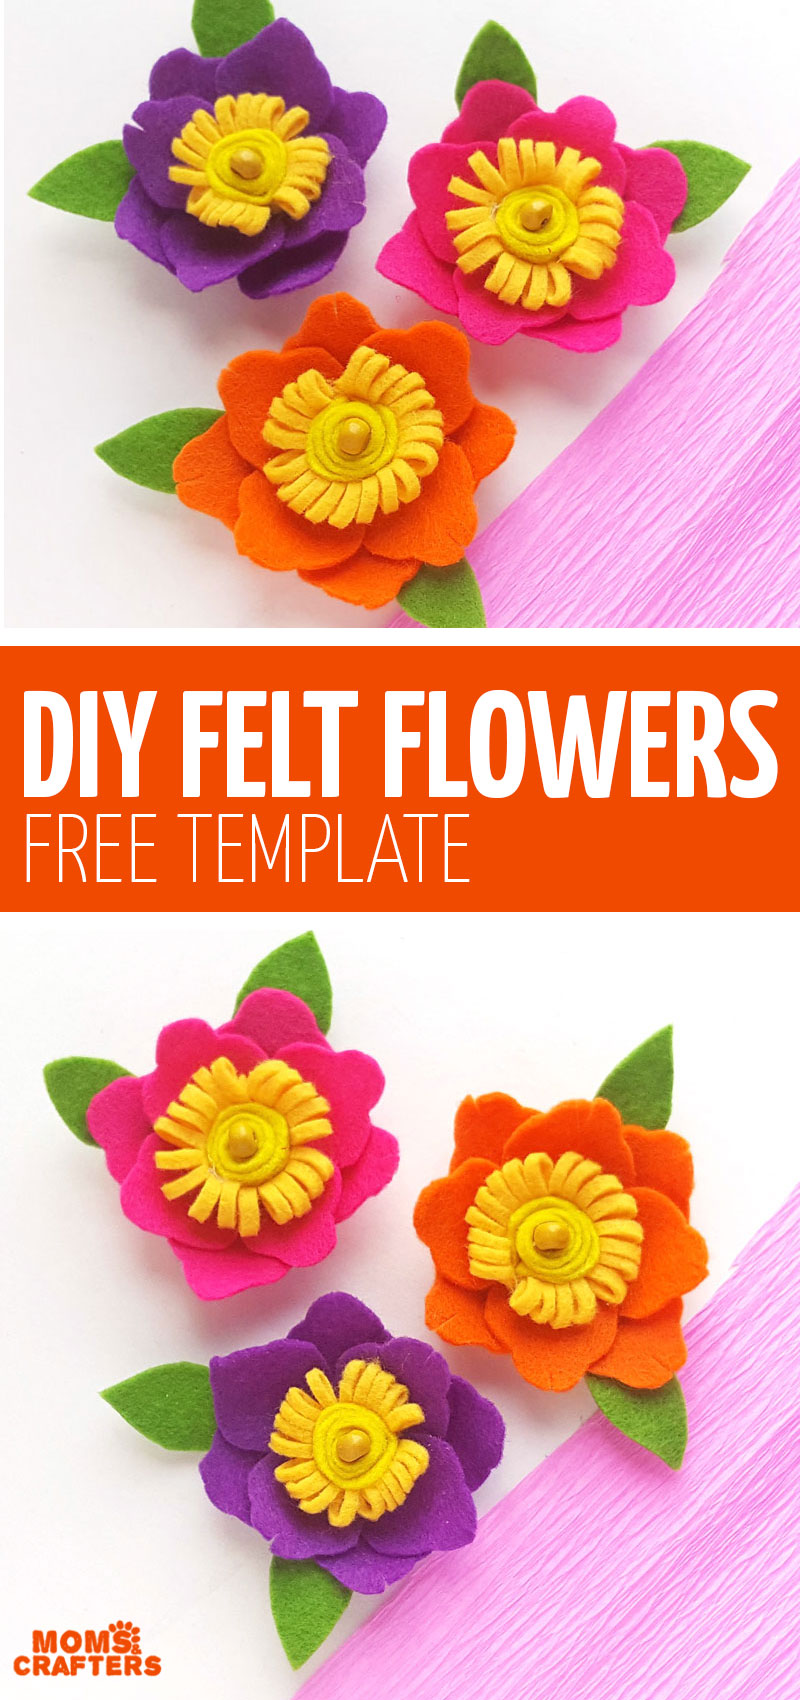 photograph about Printable Flowers Templates identified as Do it yourself Felt Bouquets - No cost Printable Template * Mothers and Crafters